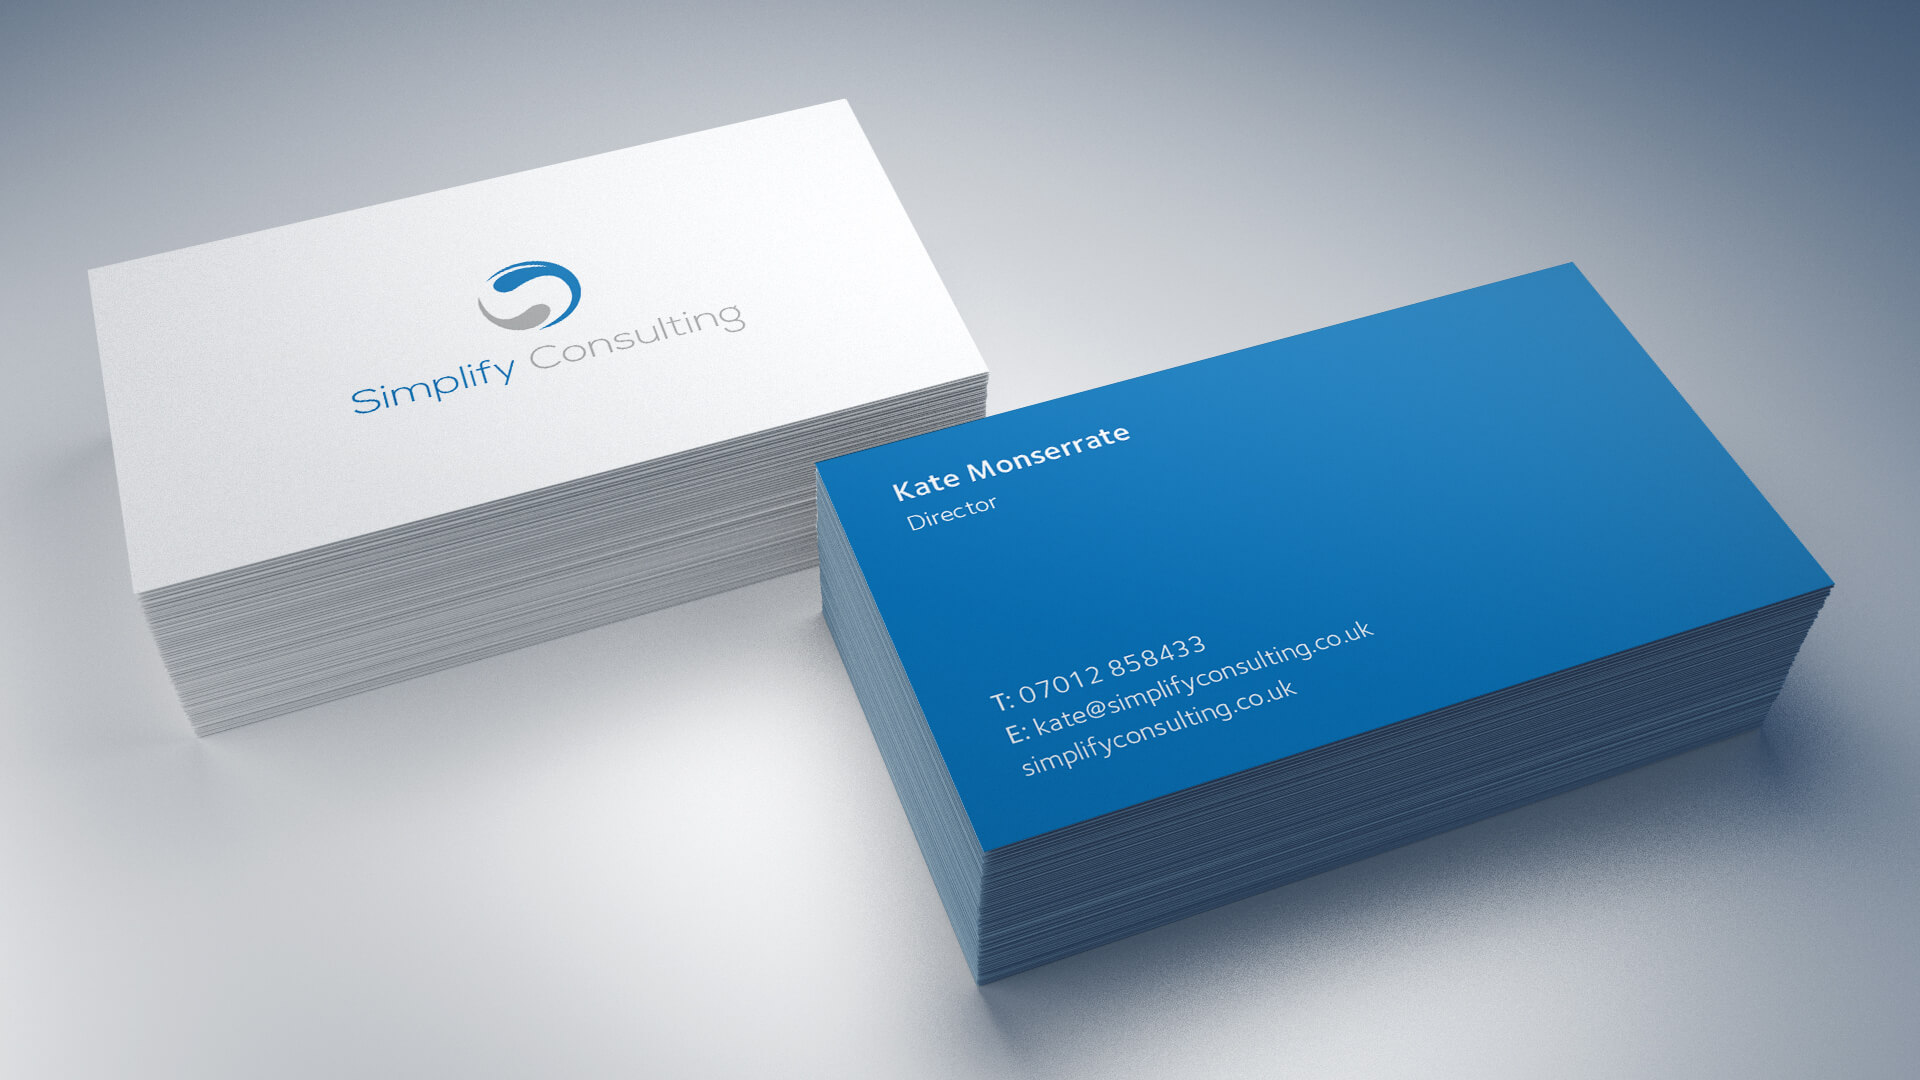 Simplify Consulting Business Cards